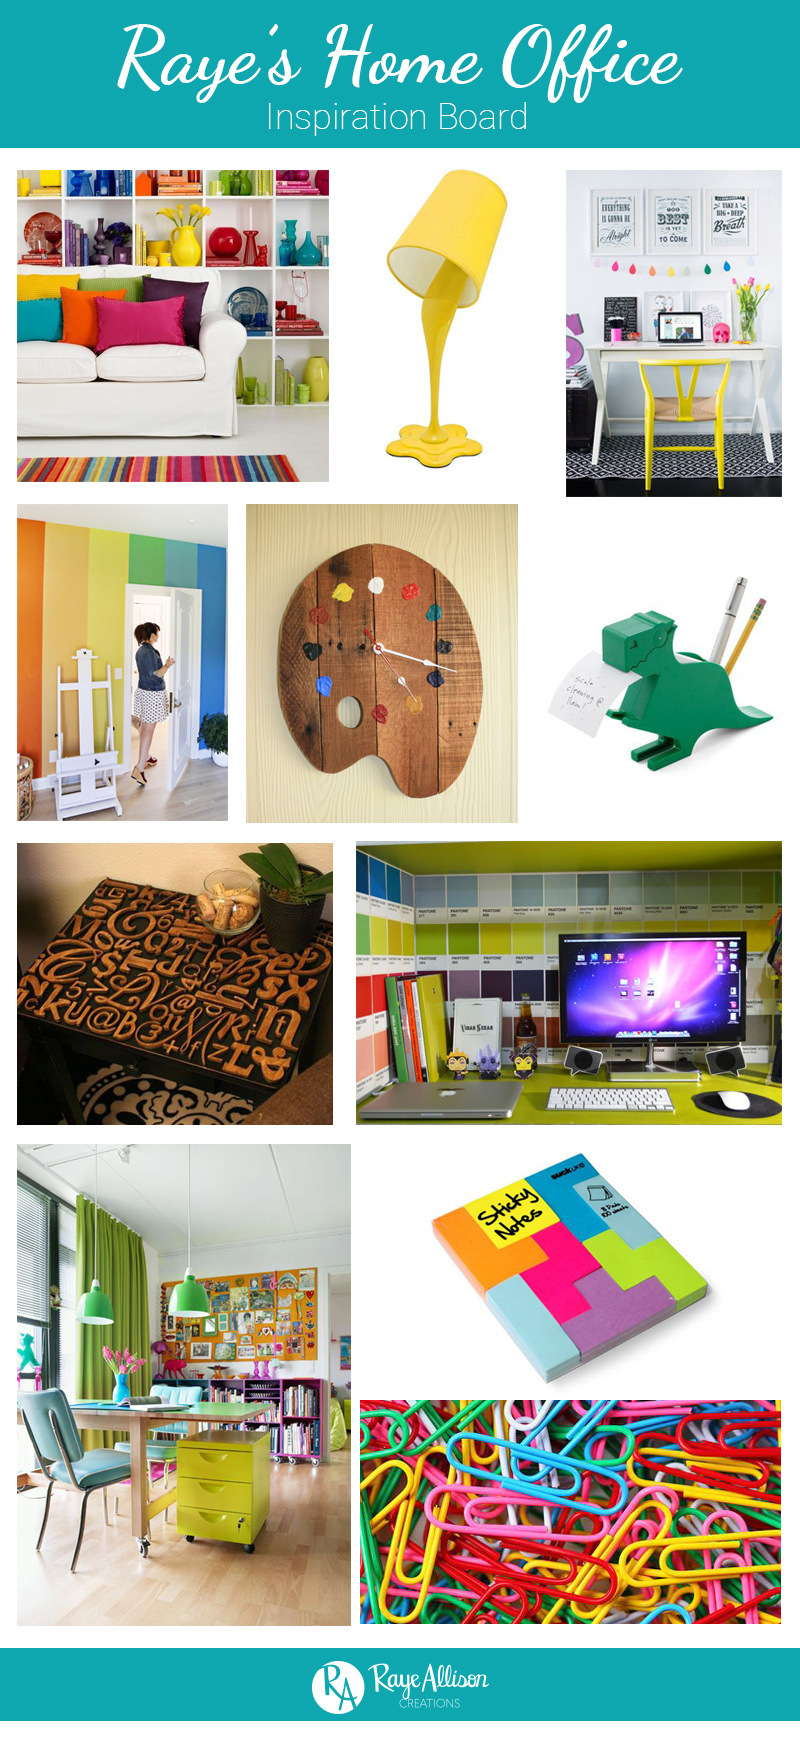 I am going to do a series on my blog with inspiration boards of ideas for different rooms in my future dream house.  Hope you find some inspiration from my home office inspiration board.